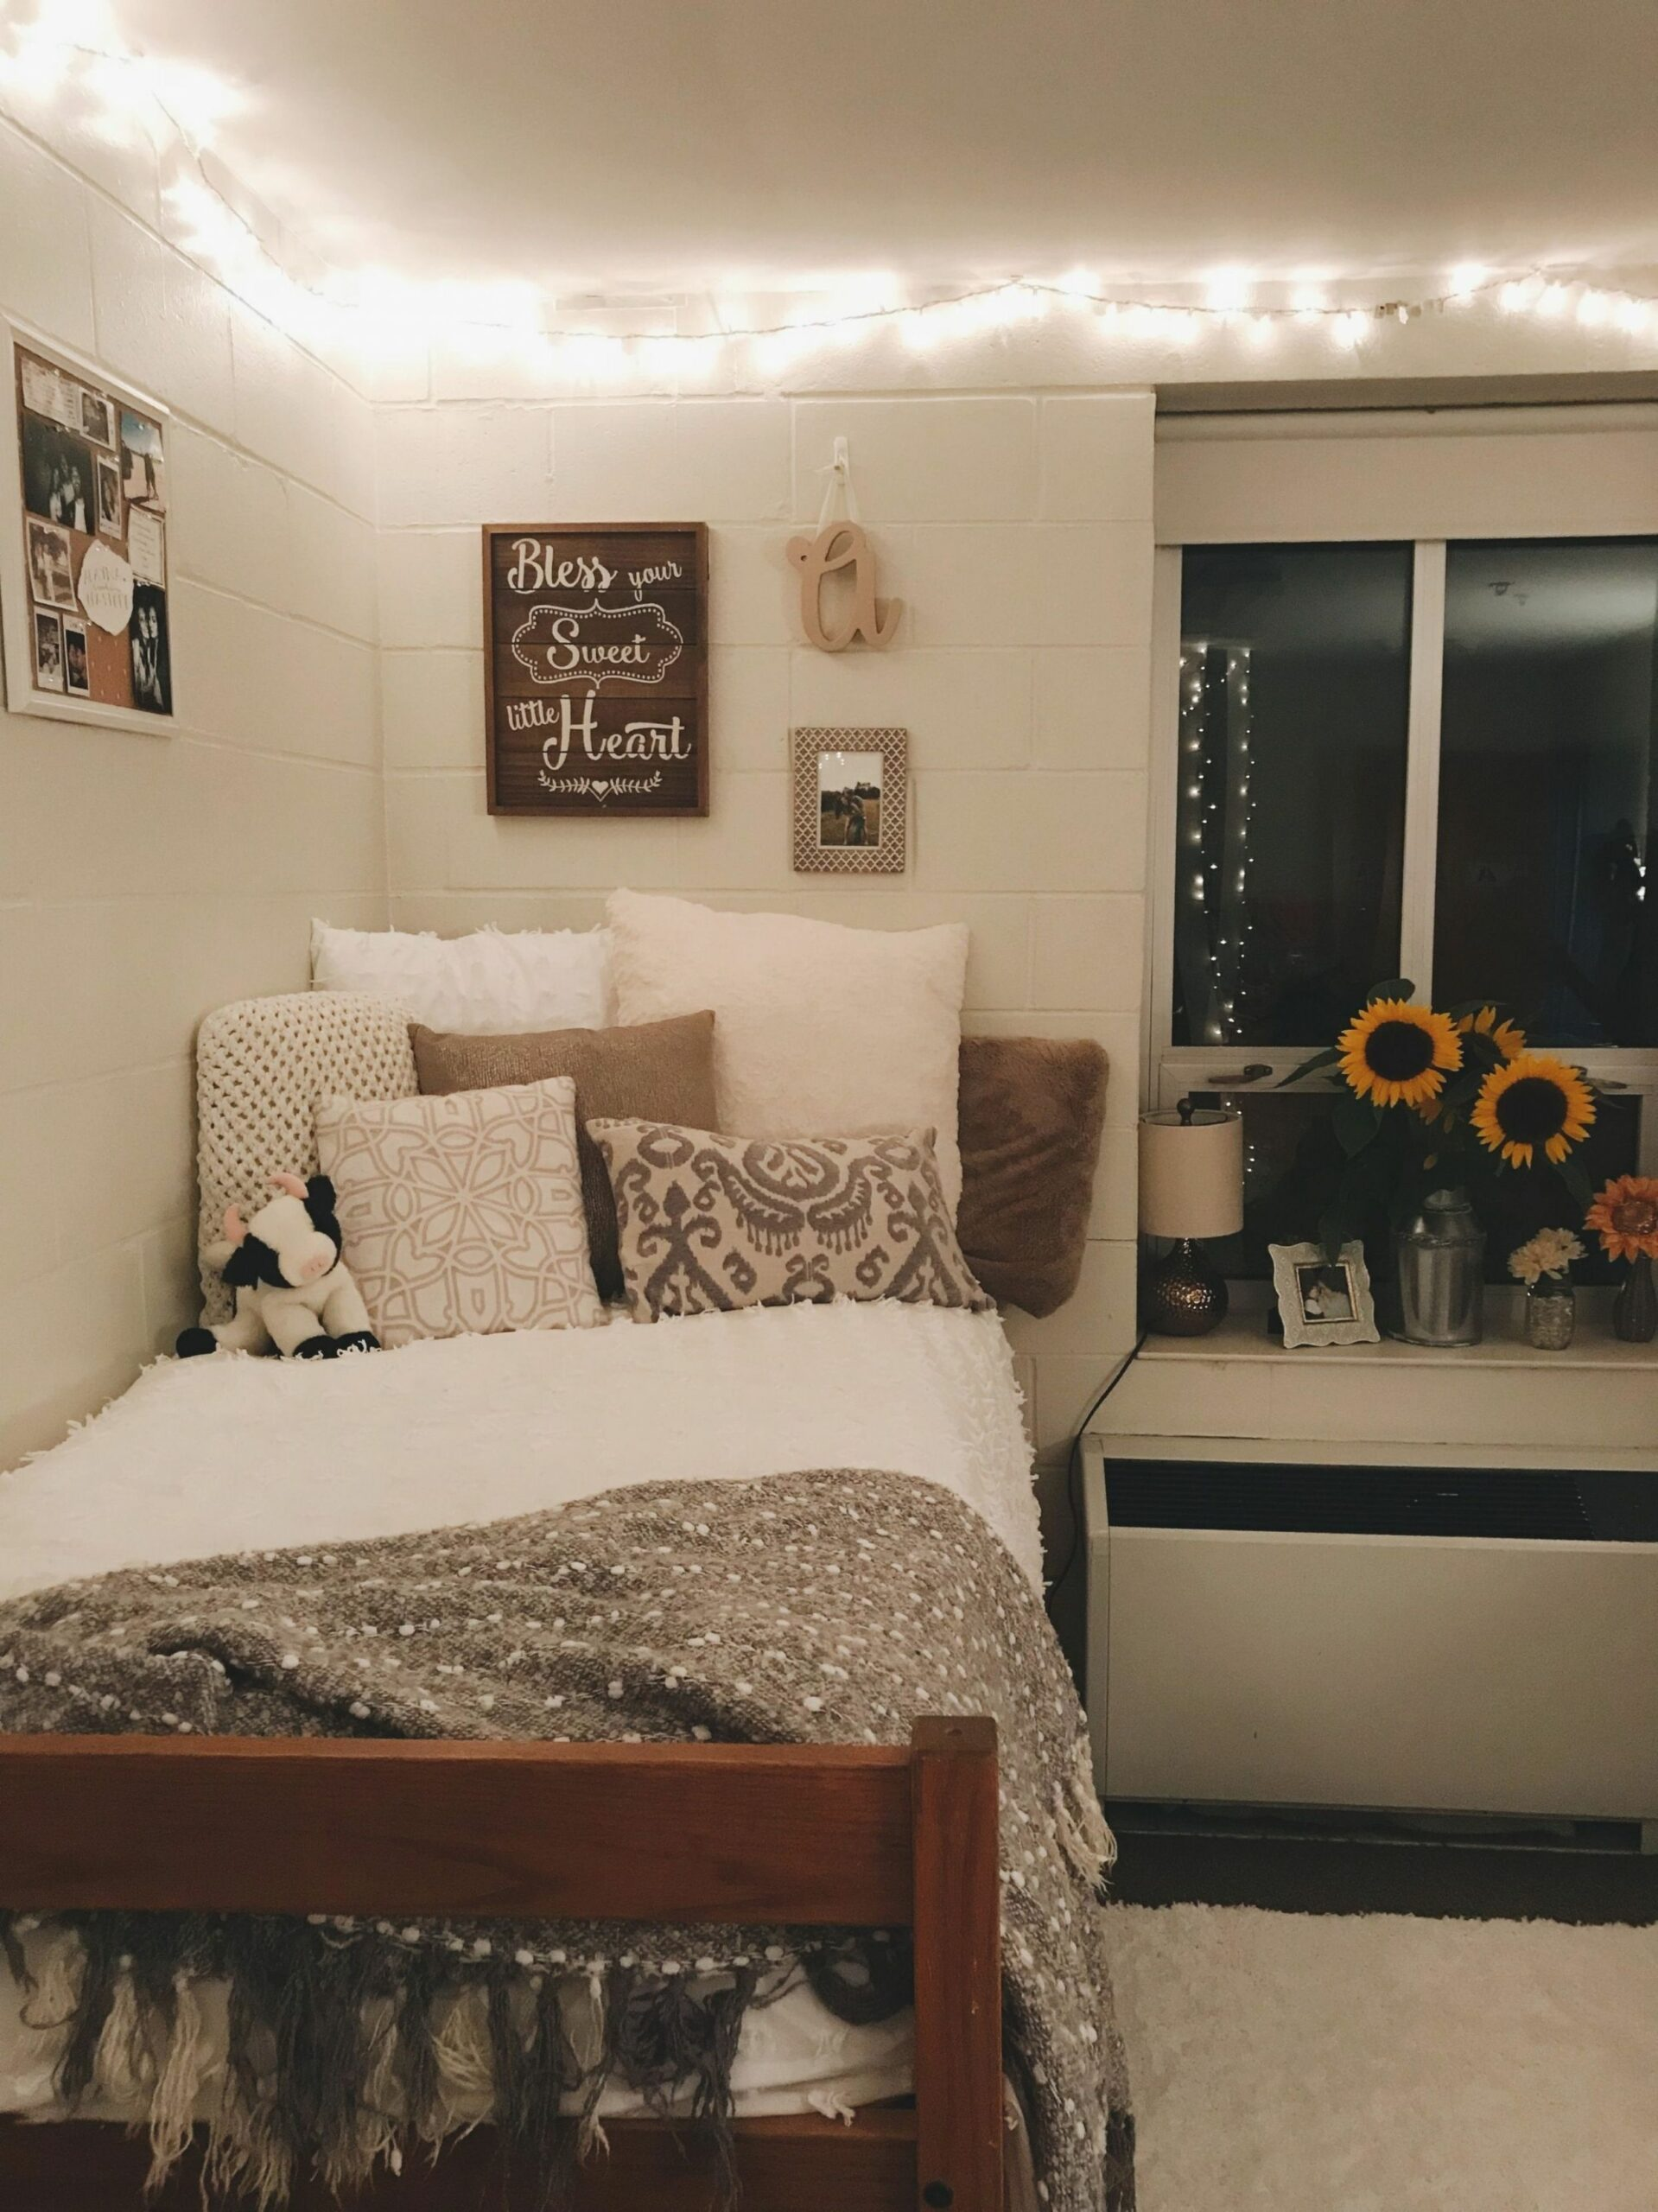 8+ Affordable Dorm Room Ideas Private (With images) | Beautiful ..